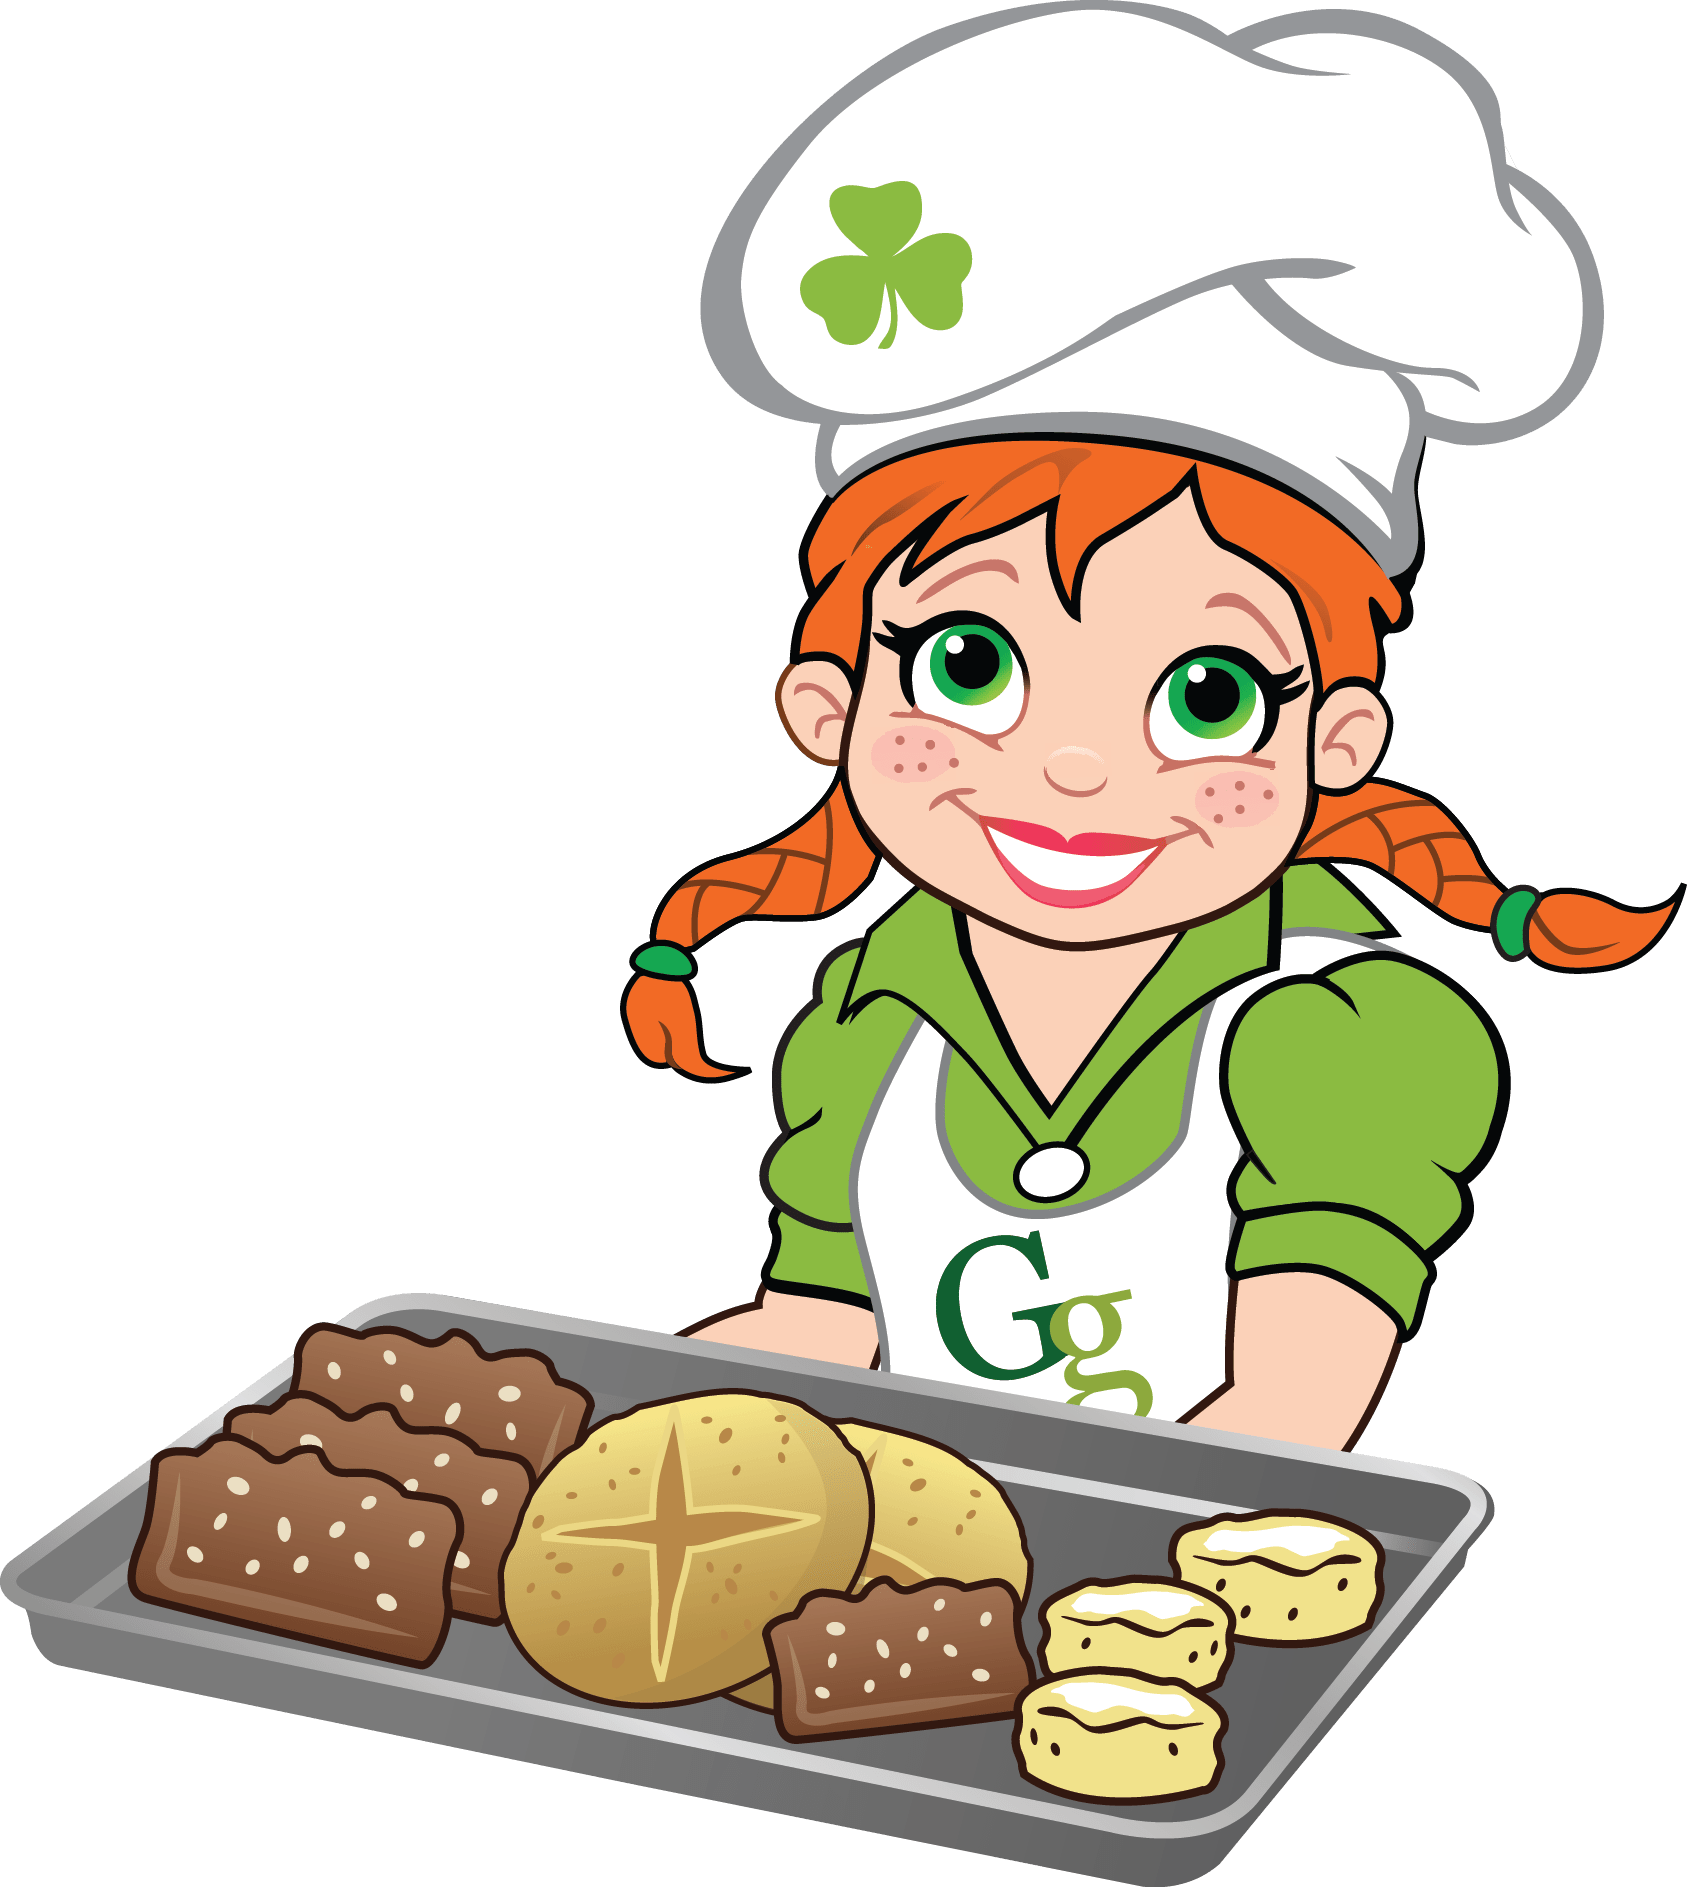 Introducing gaelic girl mixes. Baking clipart bread